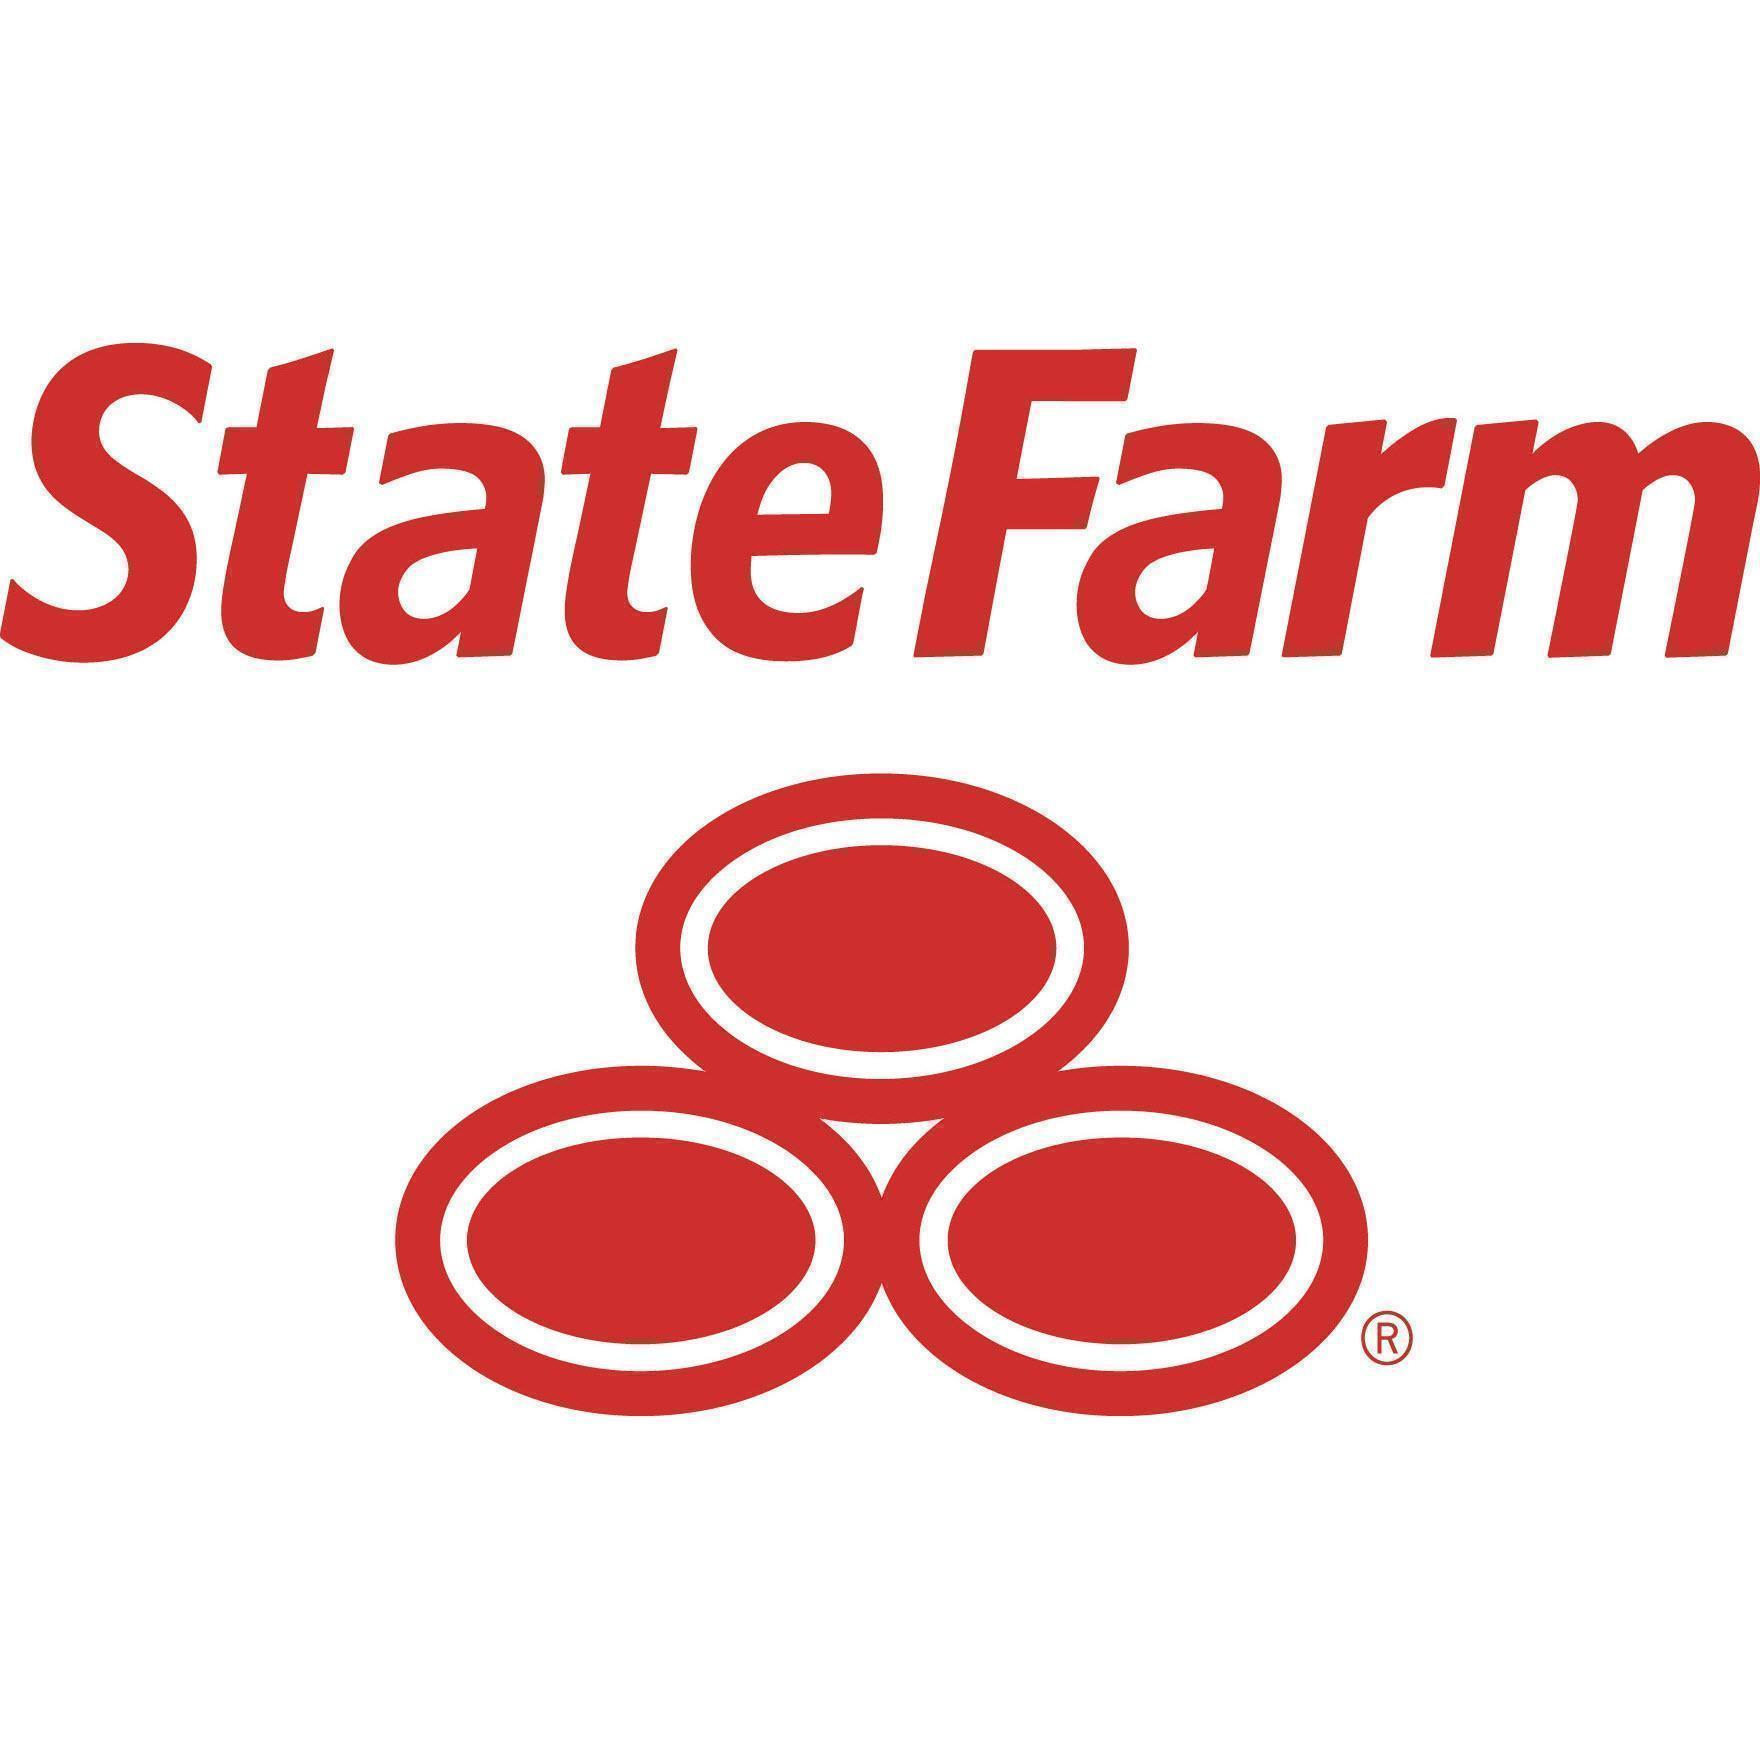 E G Warren - State Farm Insurance Agent image 2